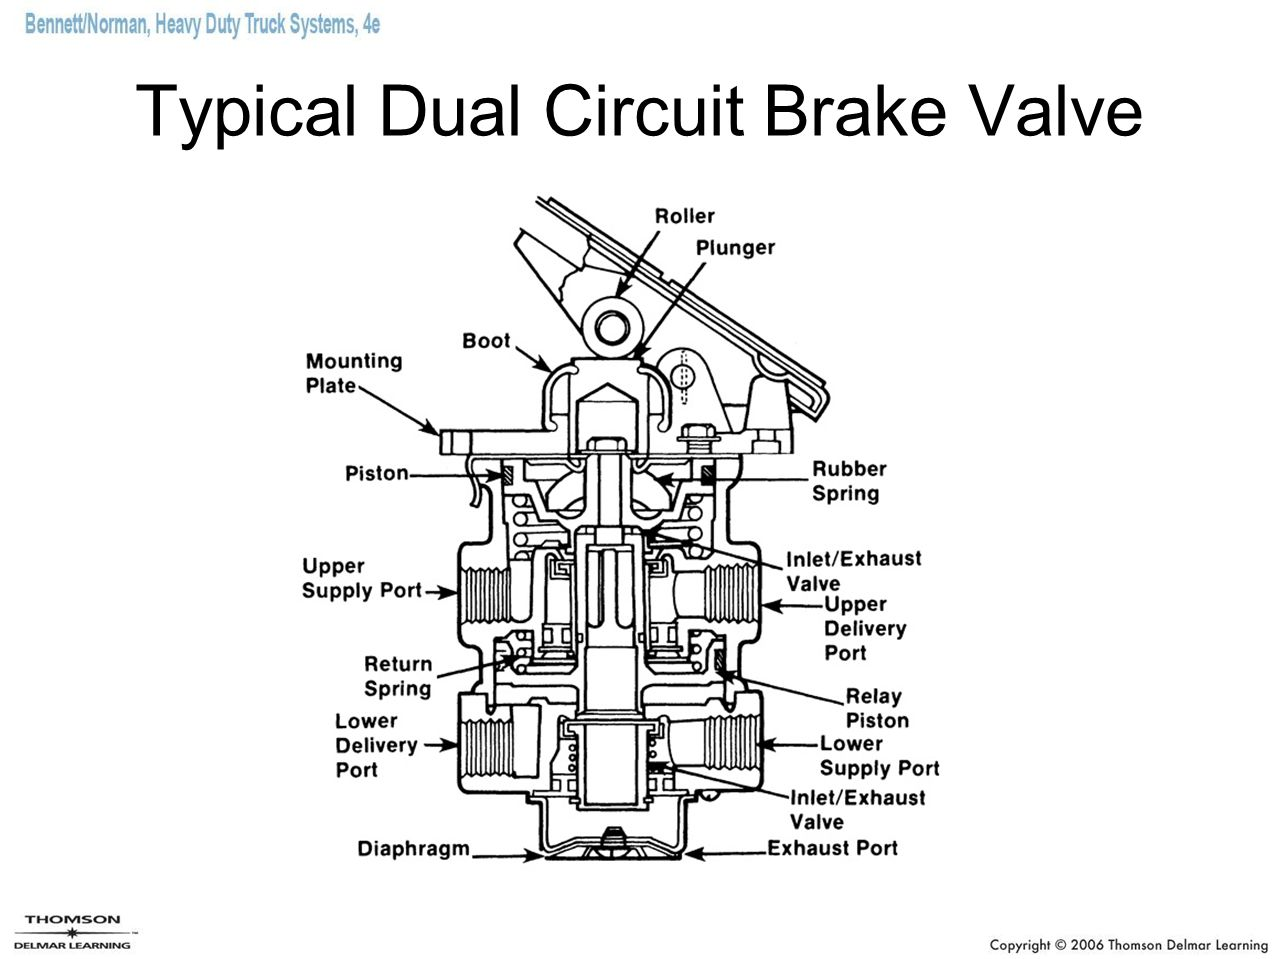 Transmission Parts In And Out Auto Electrical Wiring Diagram Manual Clutch Insightcentralnet Encyclopedia Mack Truck Brakes